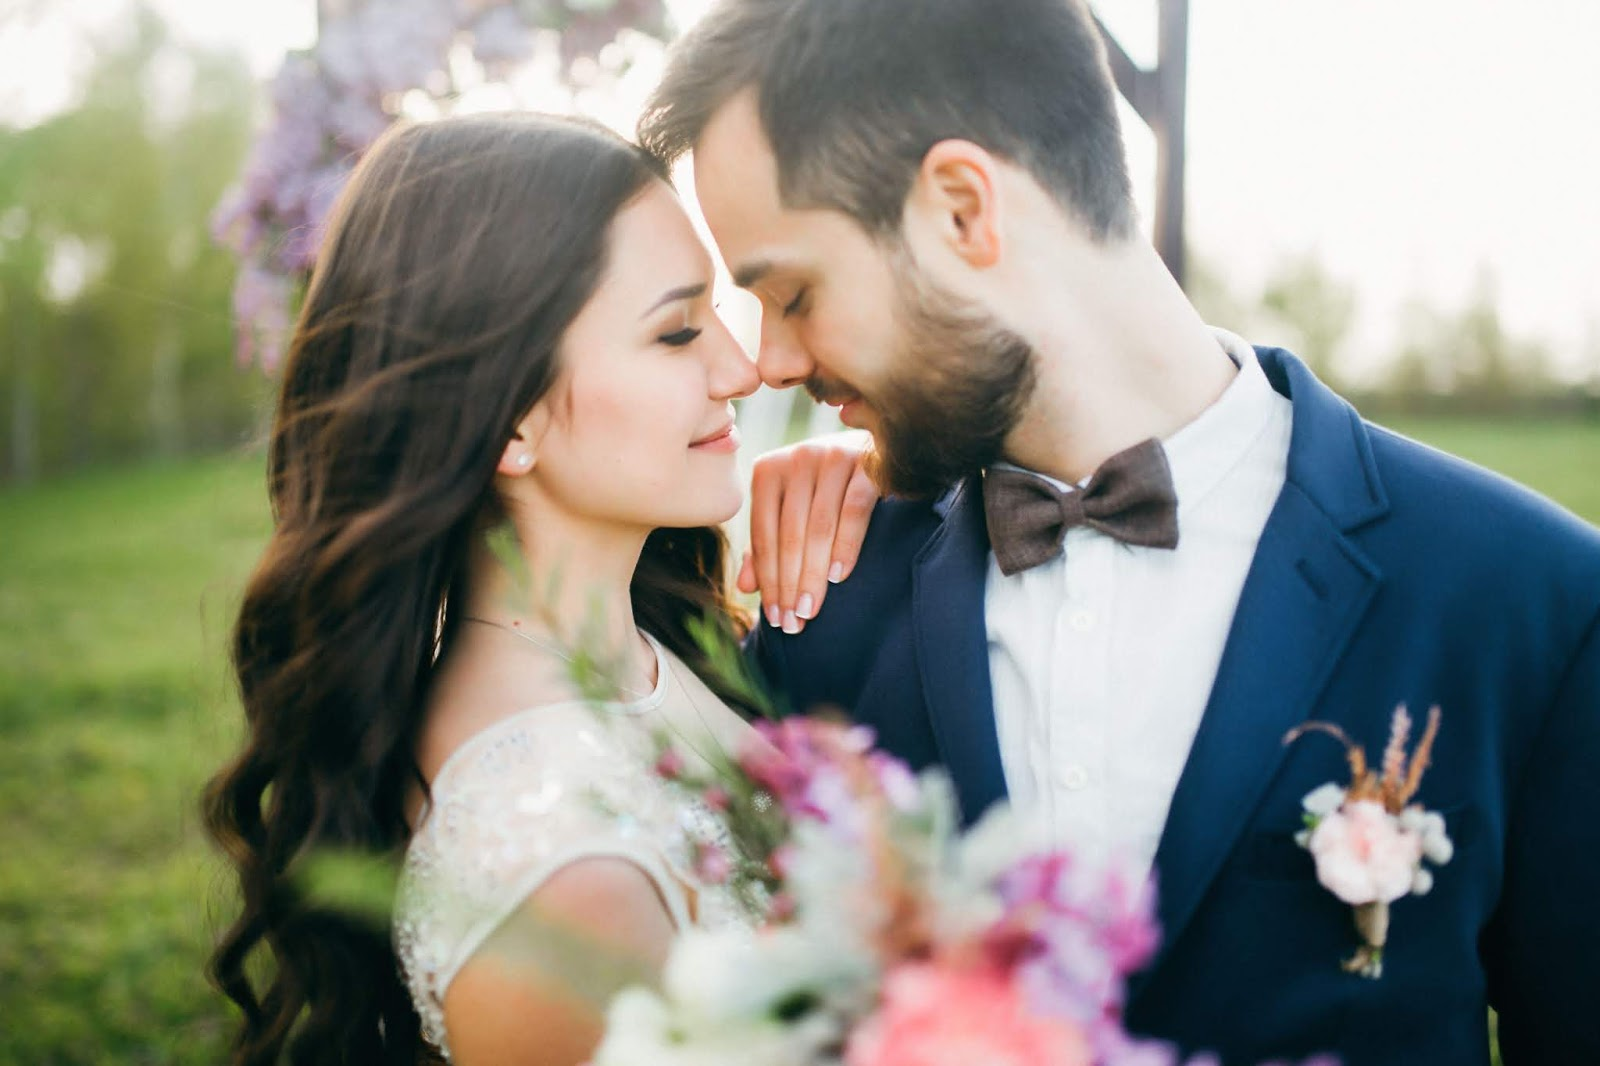 8 tricks to relax before your wedding day